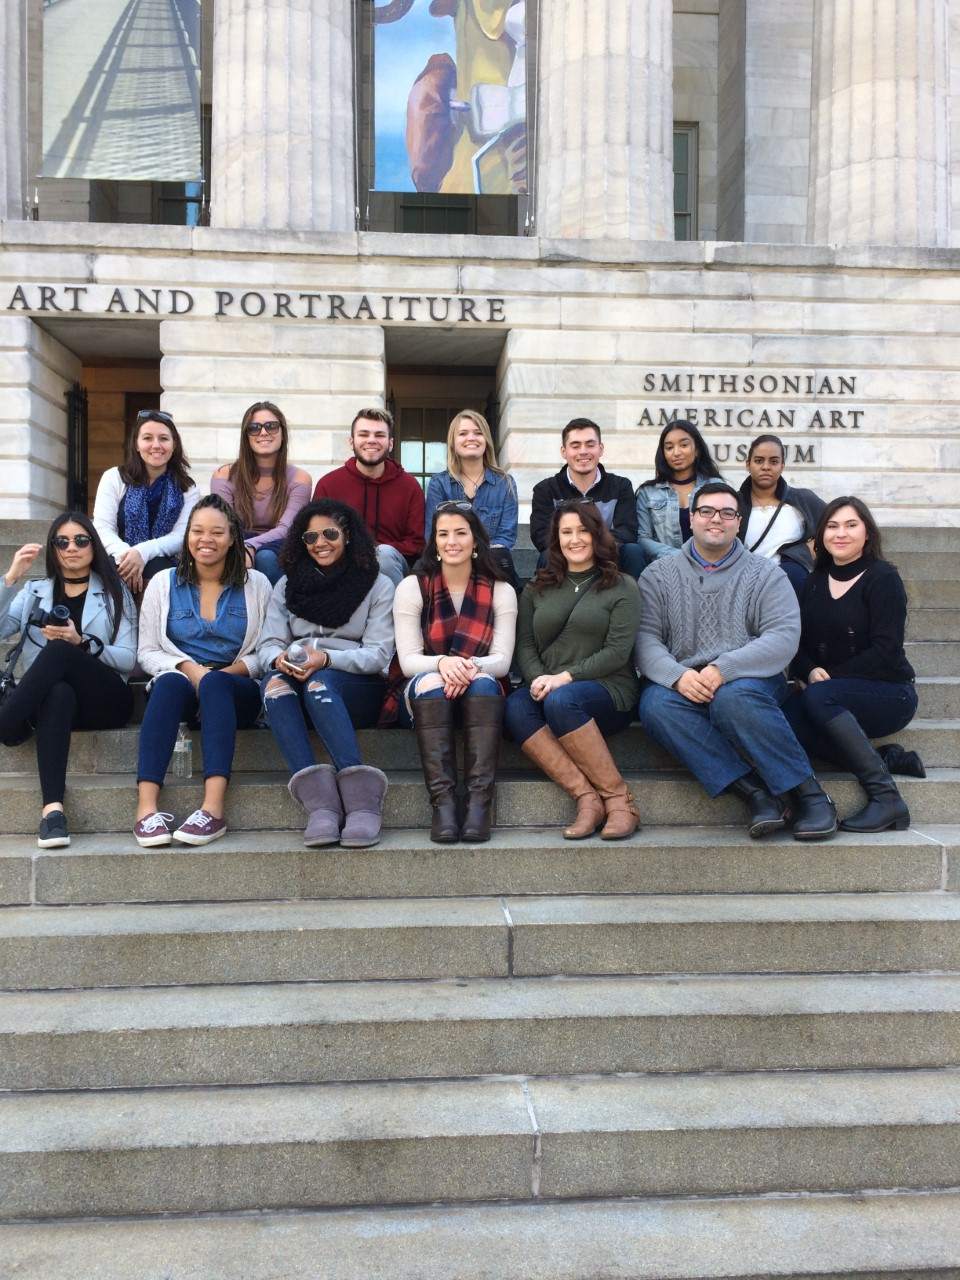 Group of students pose on the steps of art museum